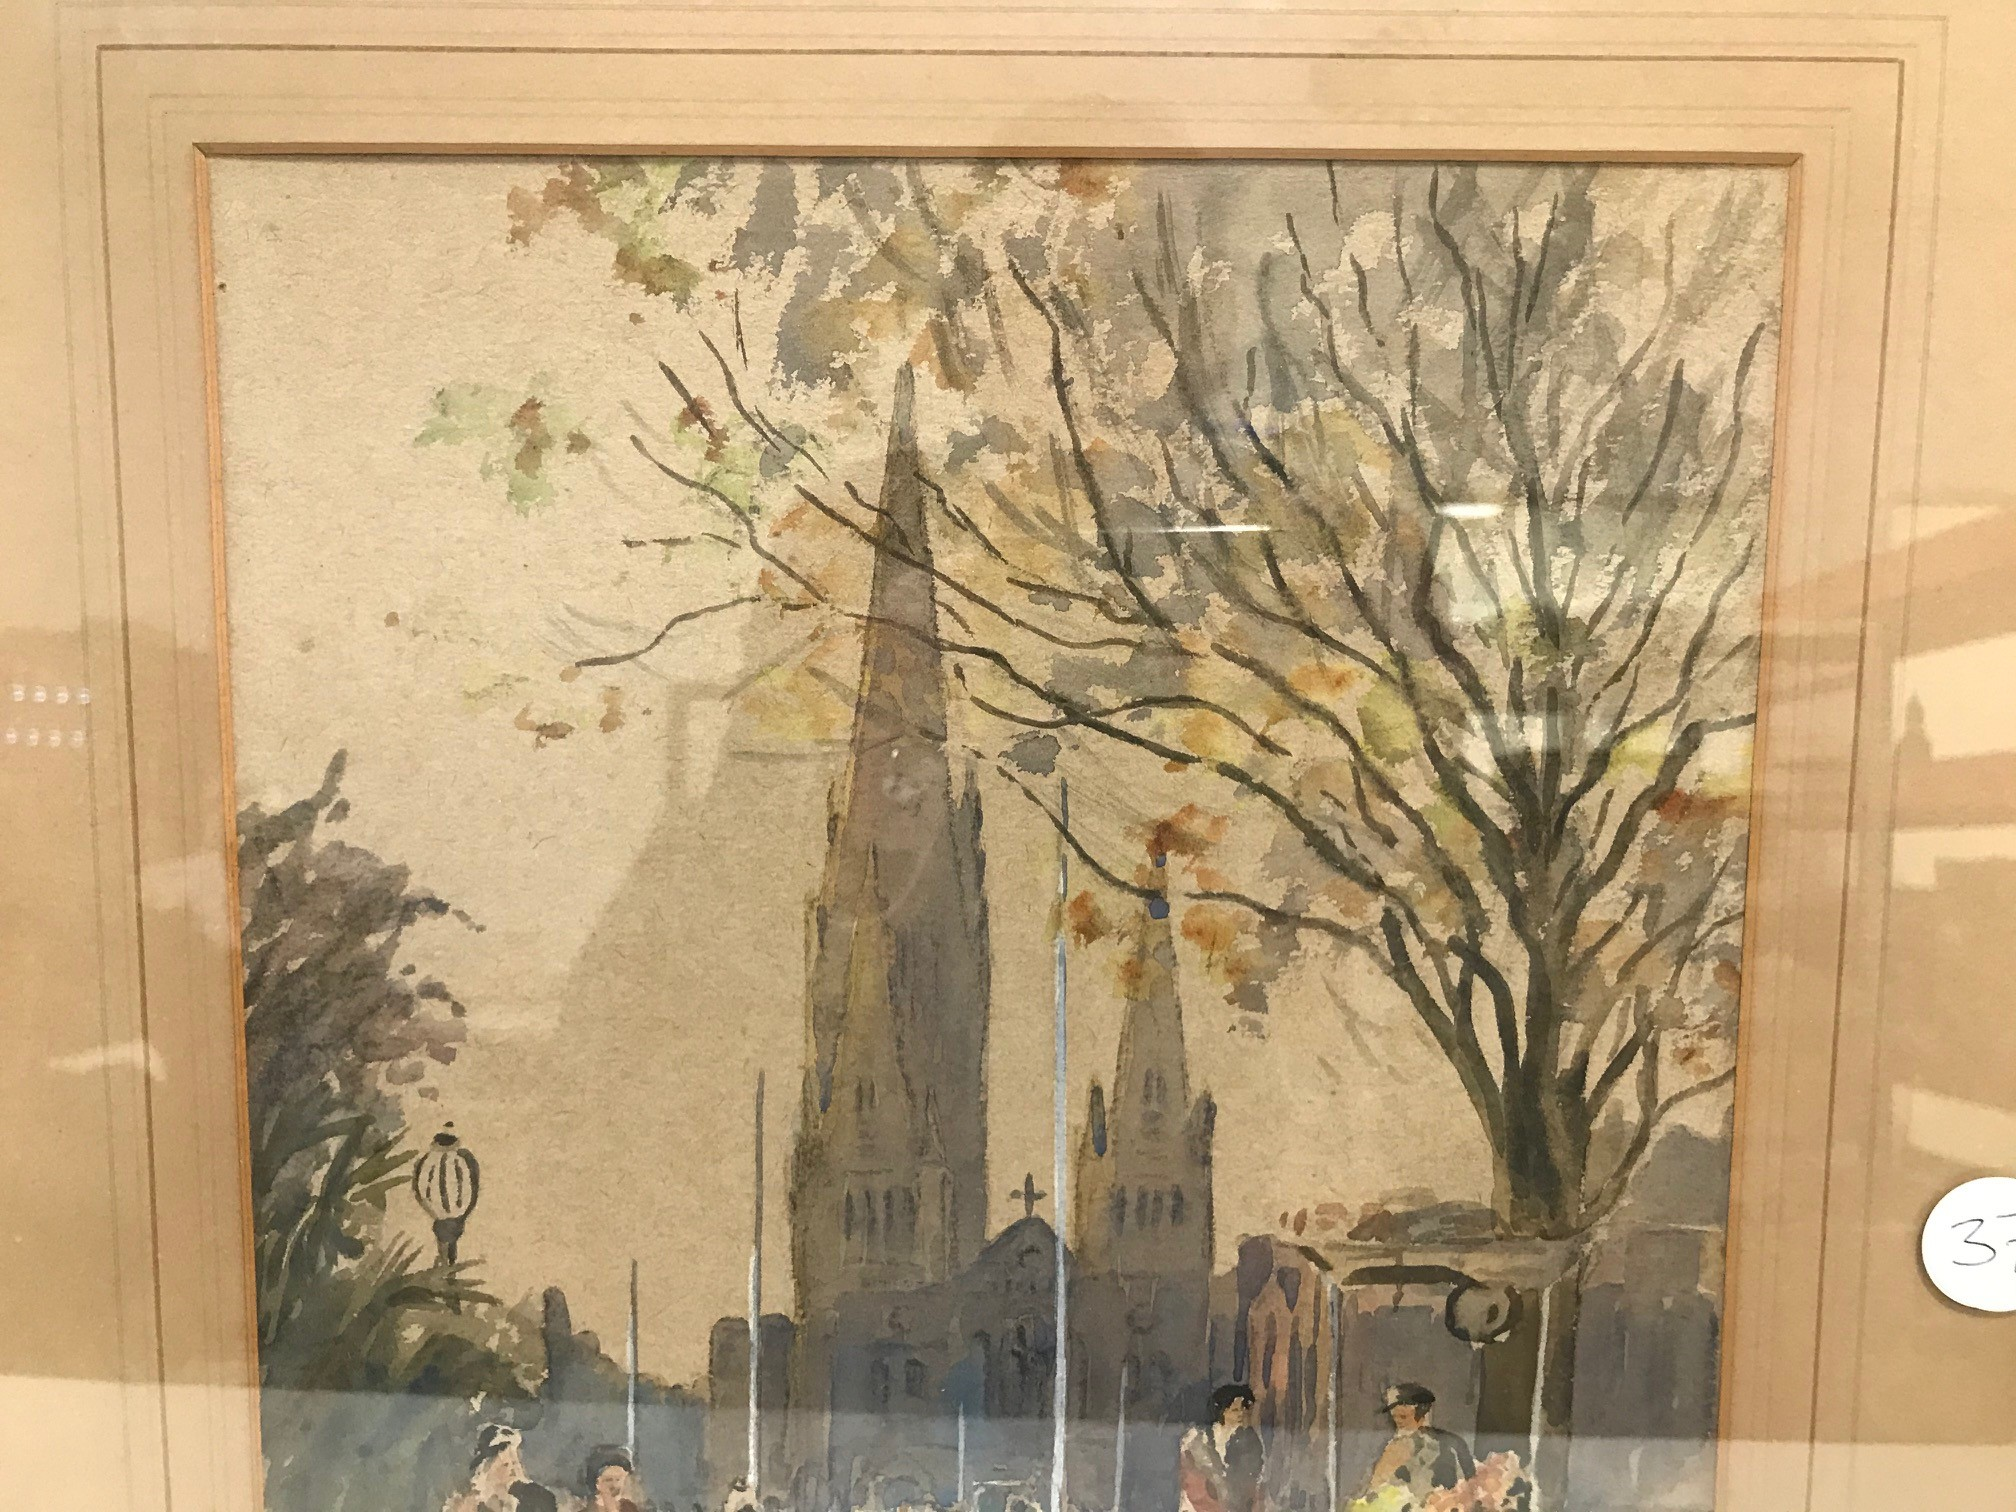 """E.W. Witty 1930s watercolour, """"Cathedral Melbourne"""", signed and dated 1933, 37cm x 27cm, framed - Image 2 of 3"""